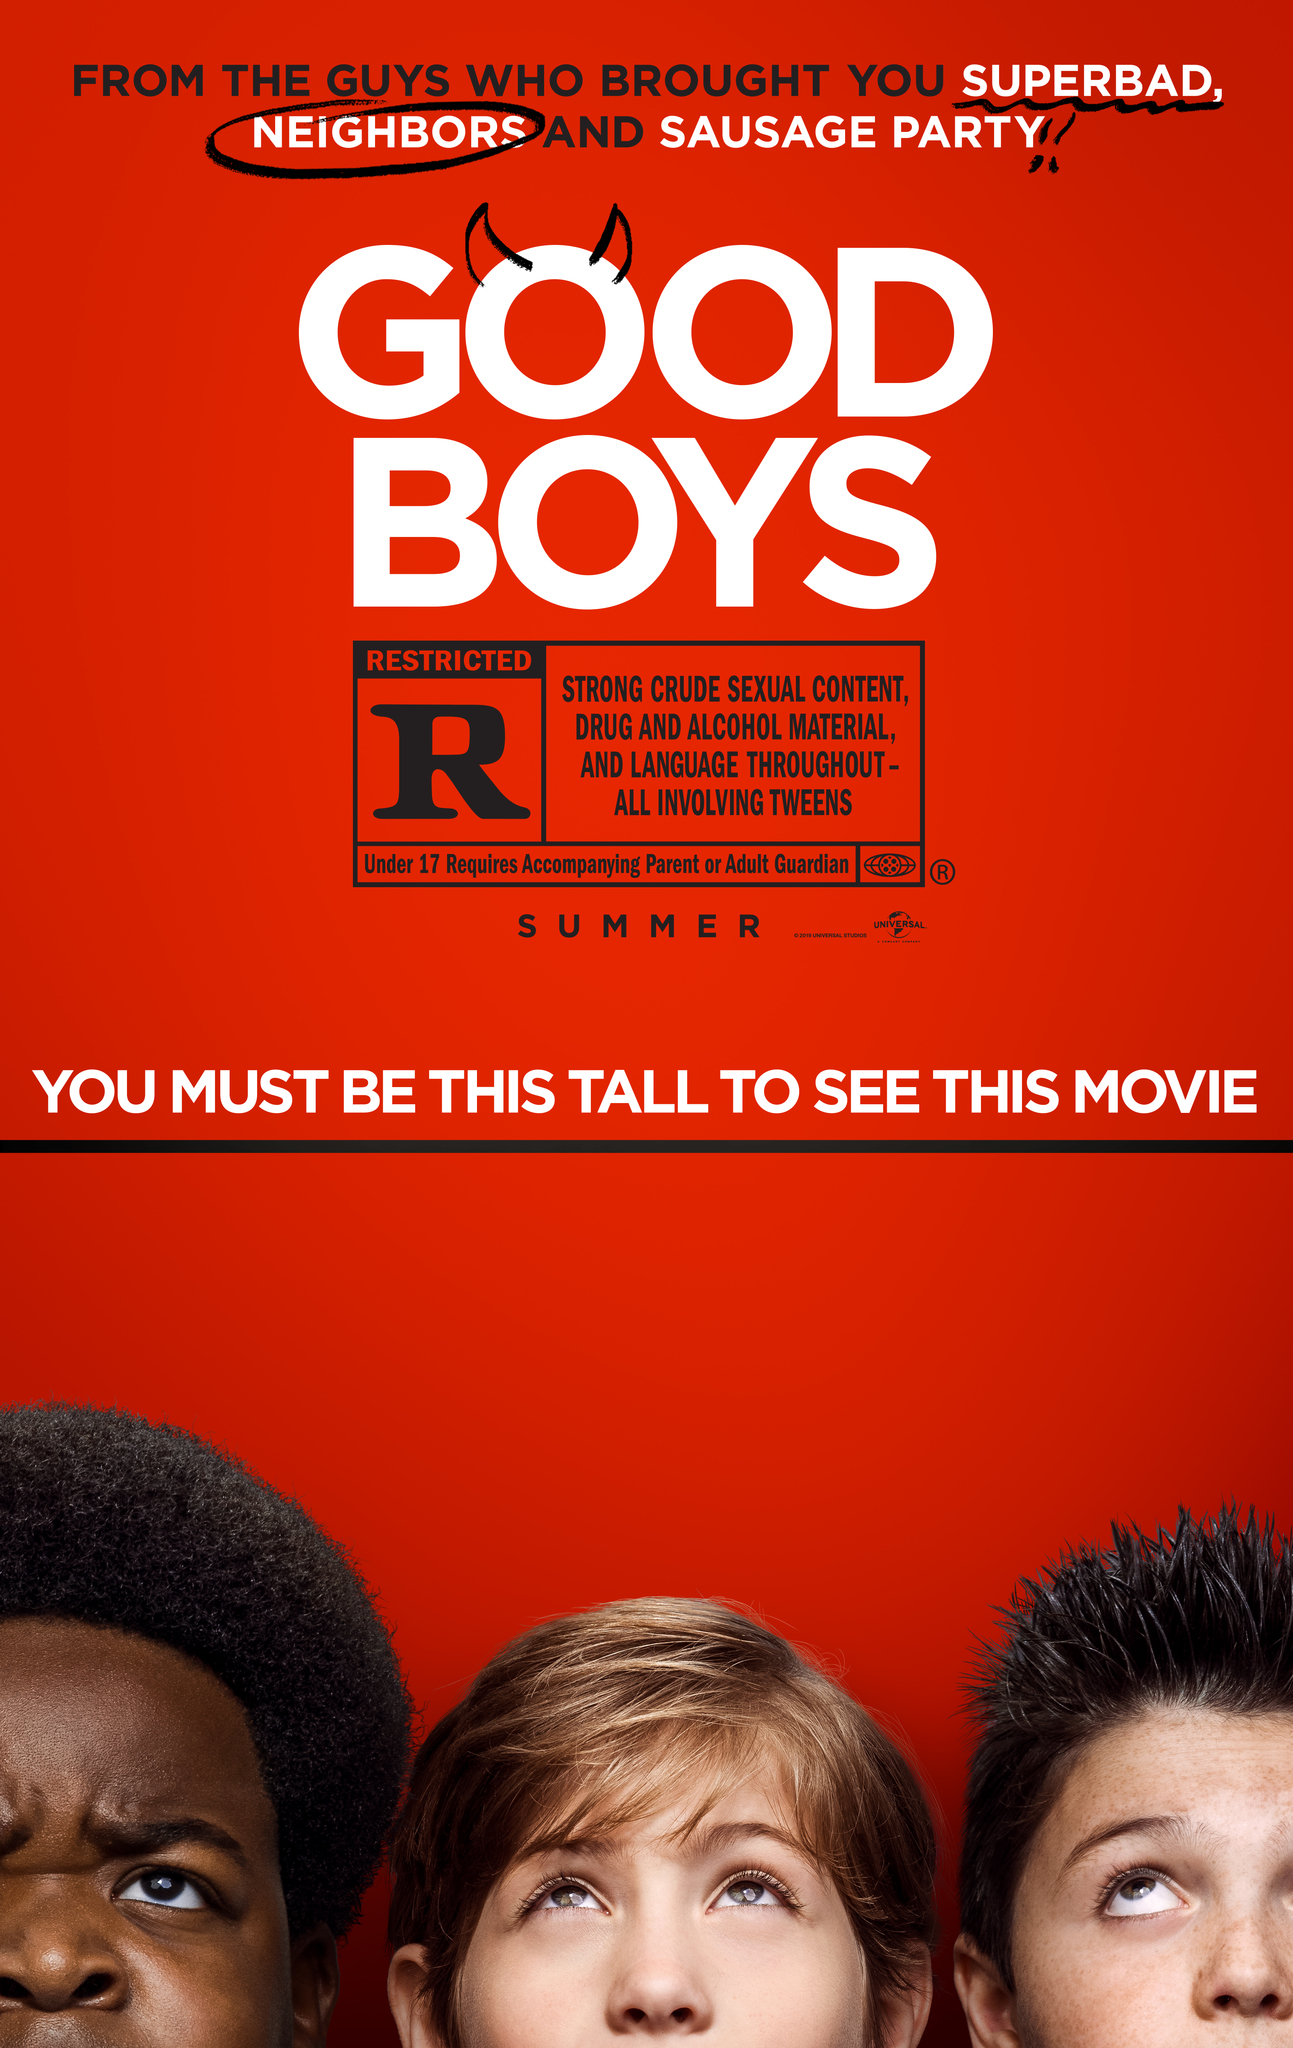 Not so bad: sync deal success for Point Classics with track placed in new film 'Good Boys'